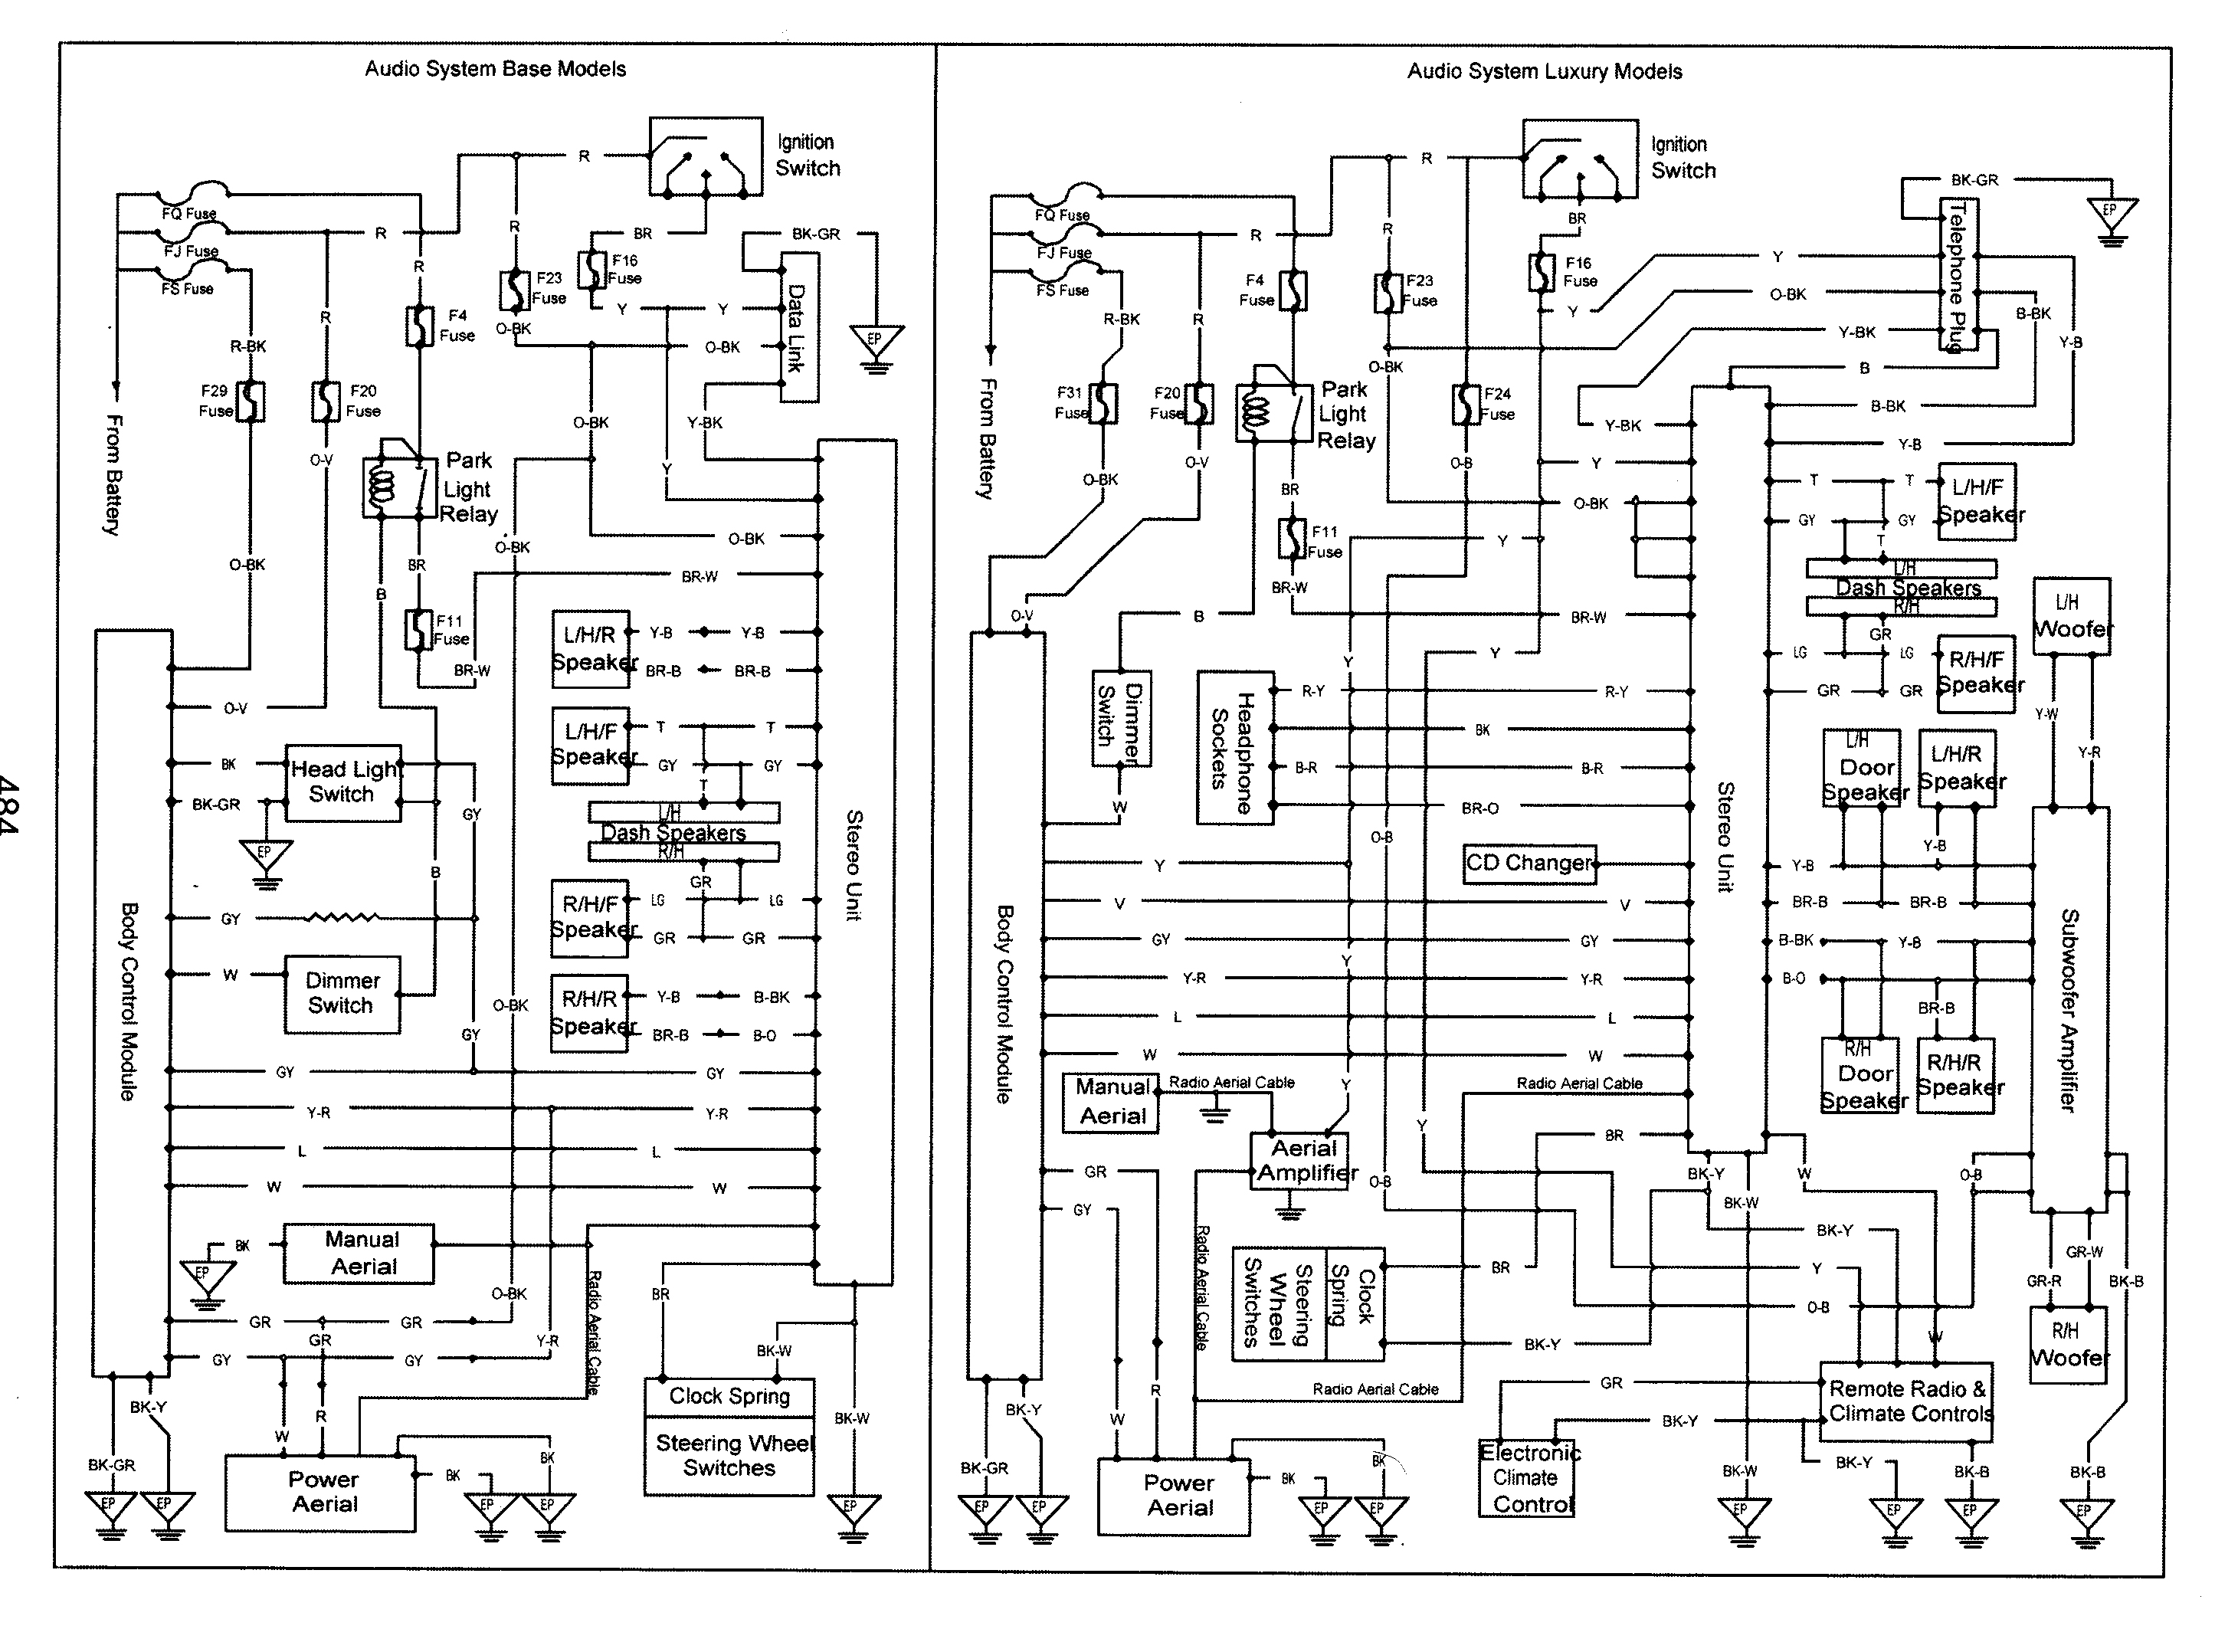 gm passlock 2 bypass diagram